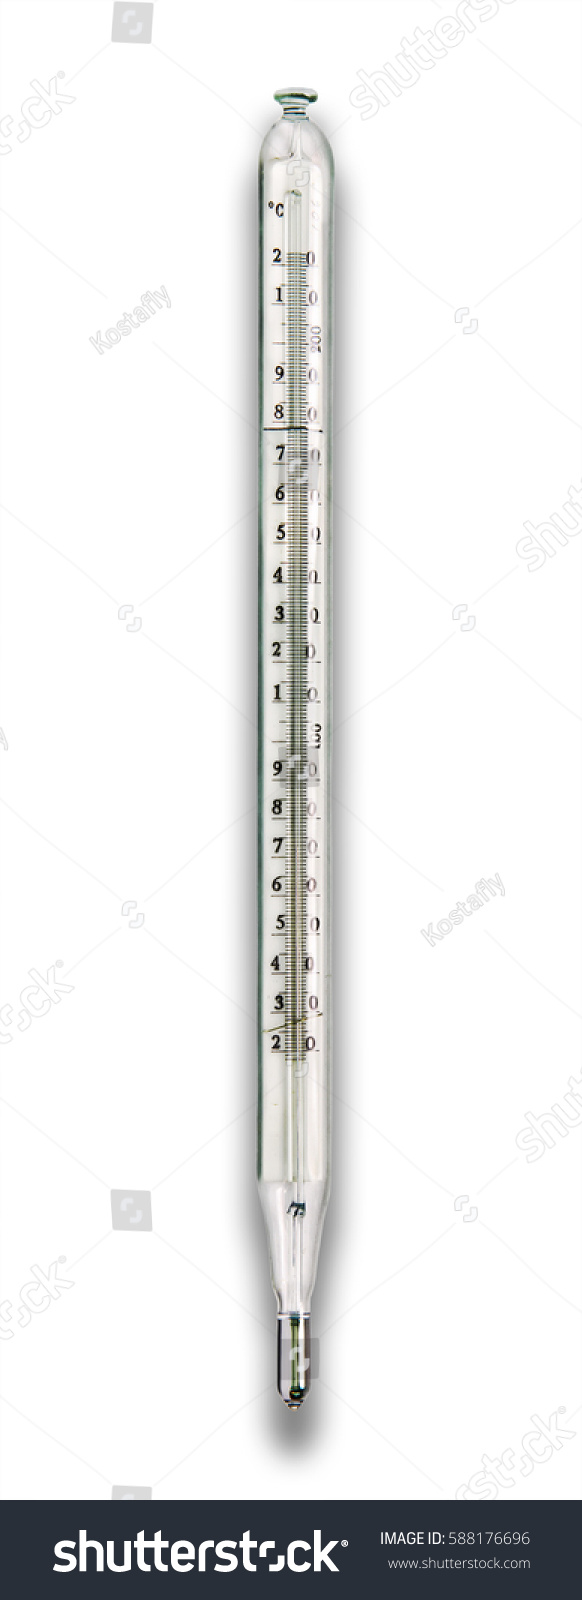 Thermometer Laboratory Apparatus Laboratory Thermometer Scale 220 Degrees Celsius Stock Photo Edit